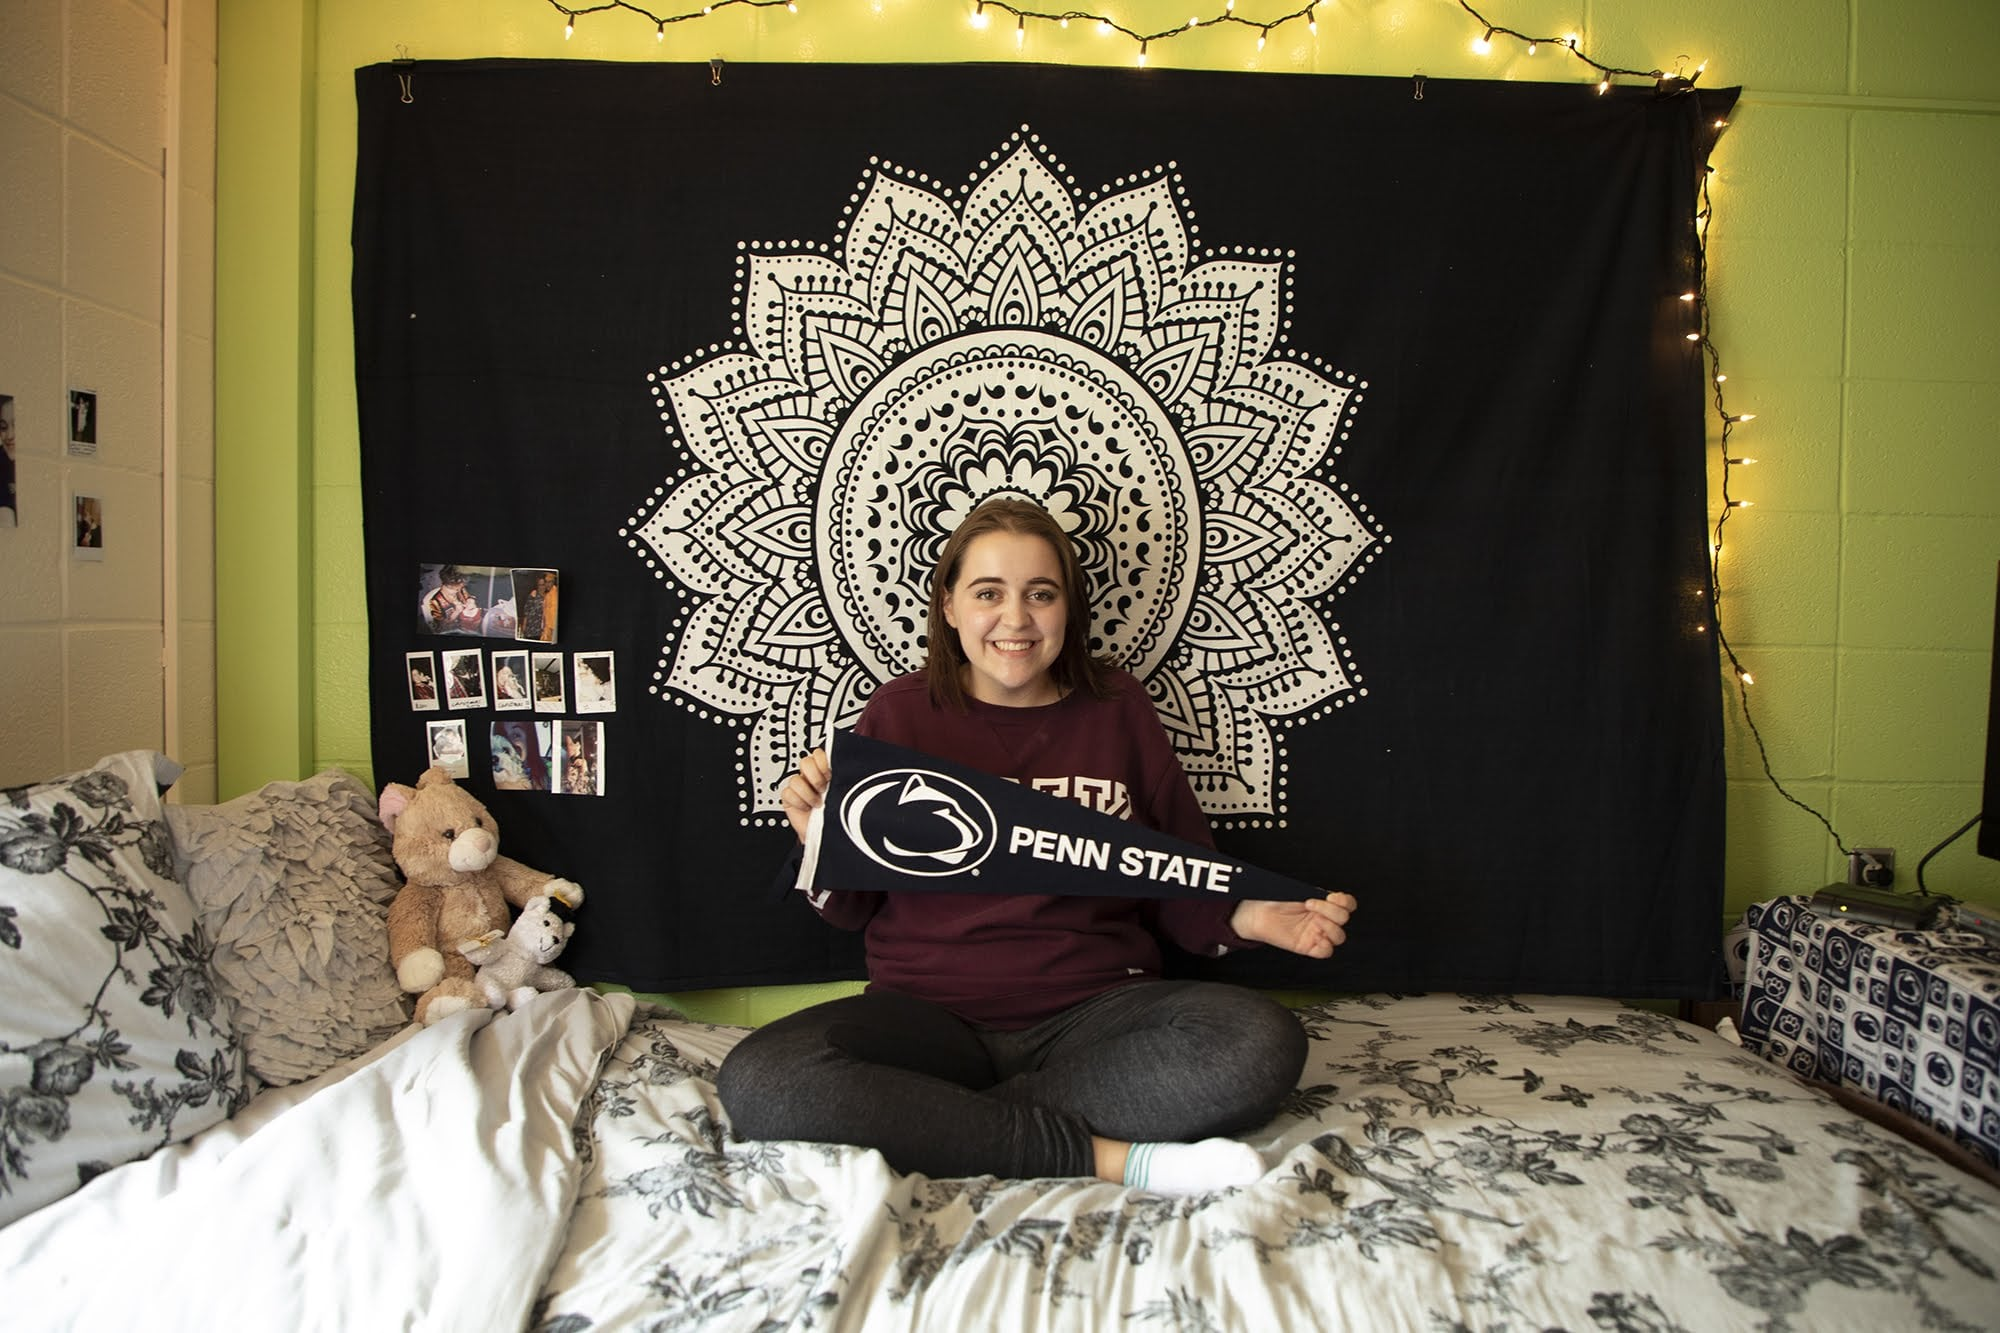 Lorin Ballog, 18, of West Mifflin, poses for a portrait in her dorm room at Penn State Greater Allegheny.